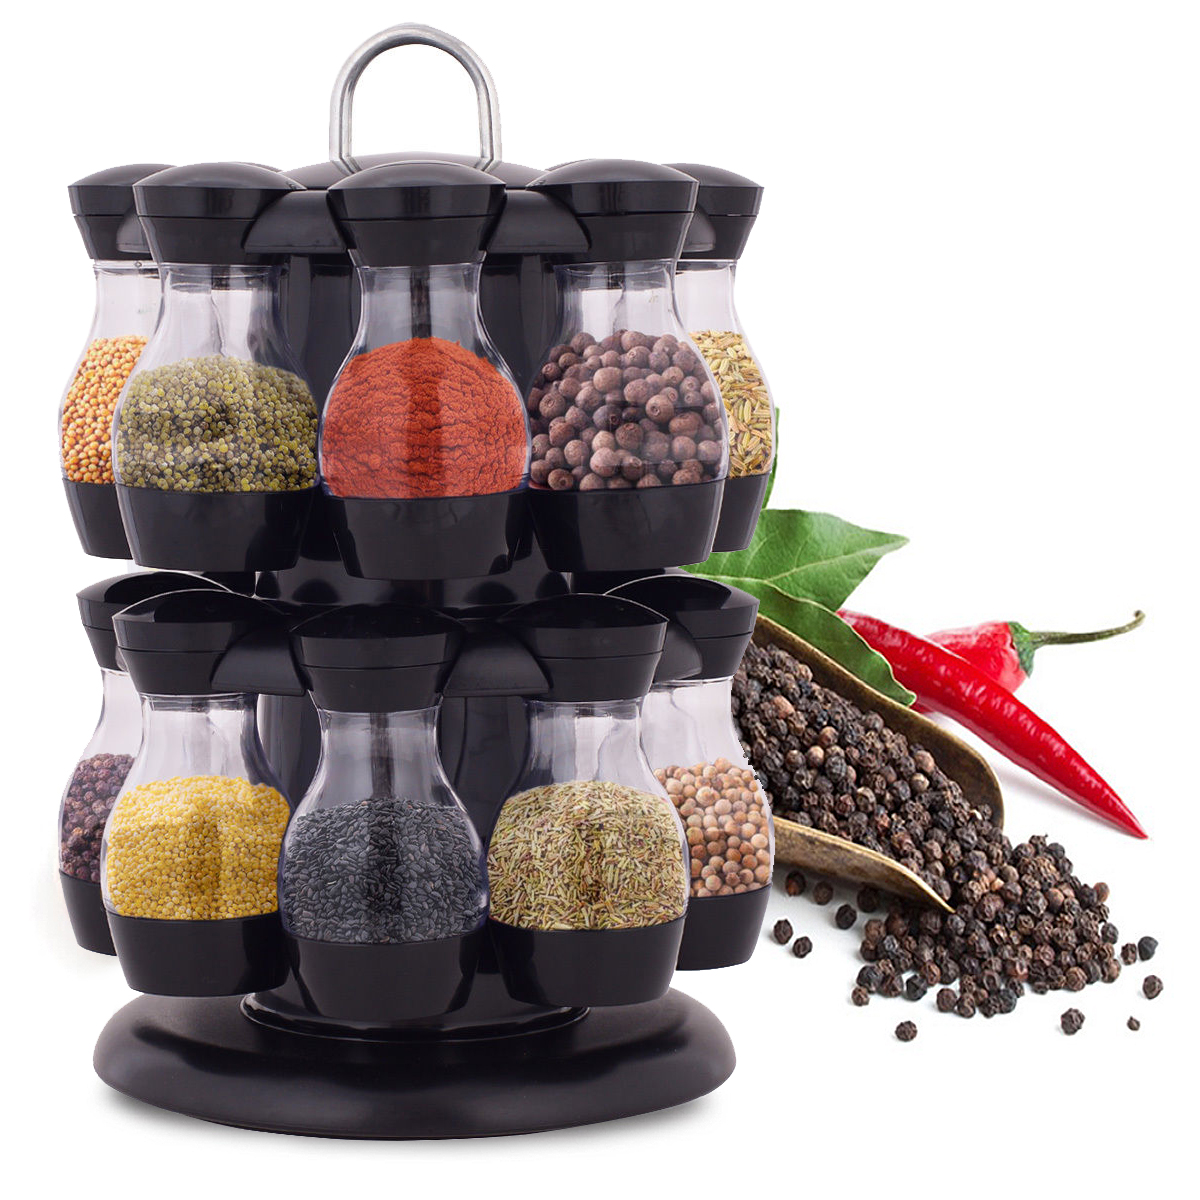 16 Jar Rotating Spice Rack Carousel Kitchen Storage Holder Condiments Container Transparent( body of jar) + Black - image 8 of 8